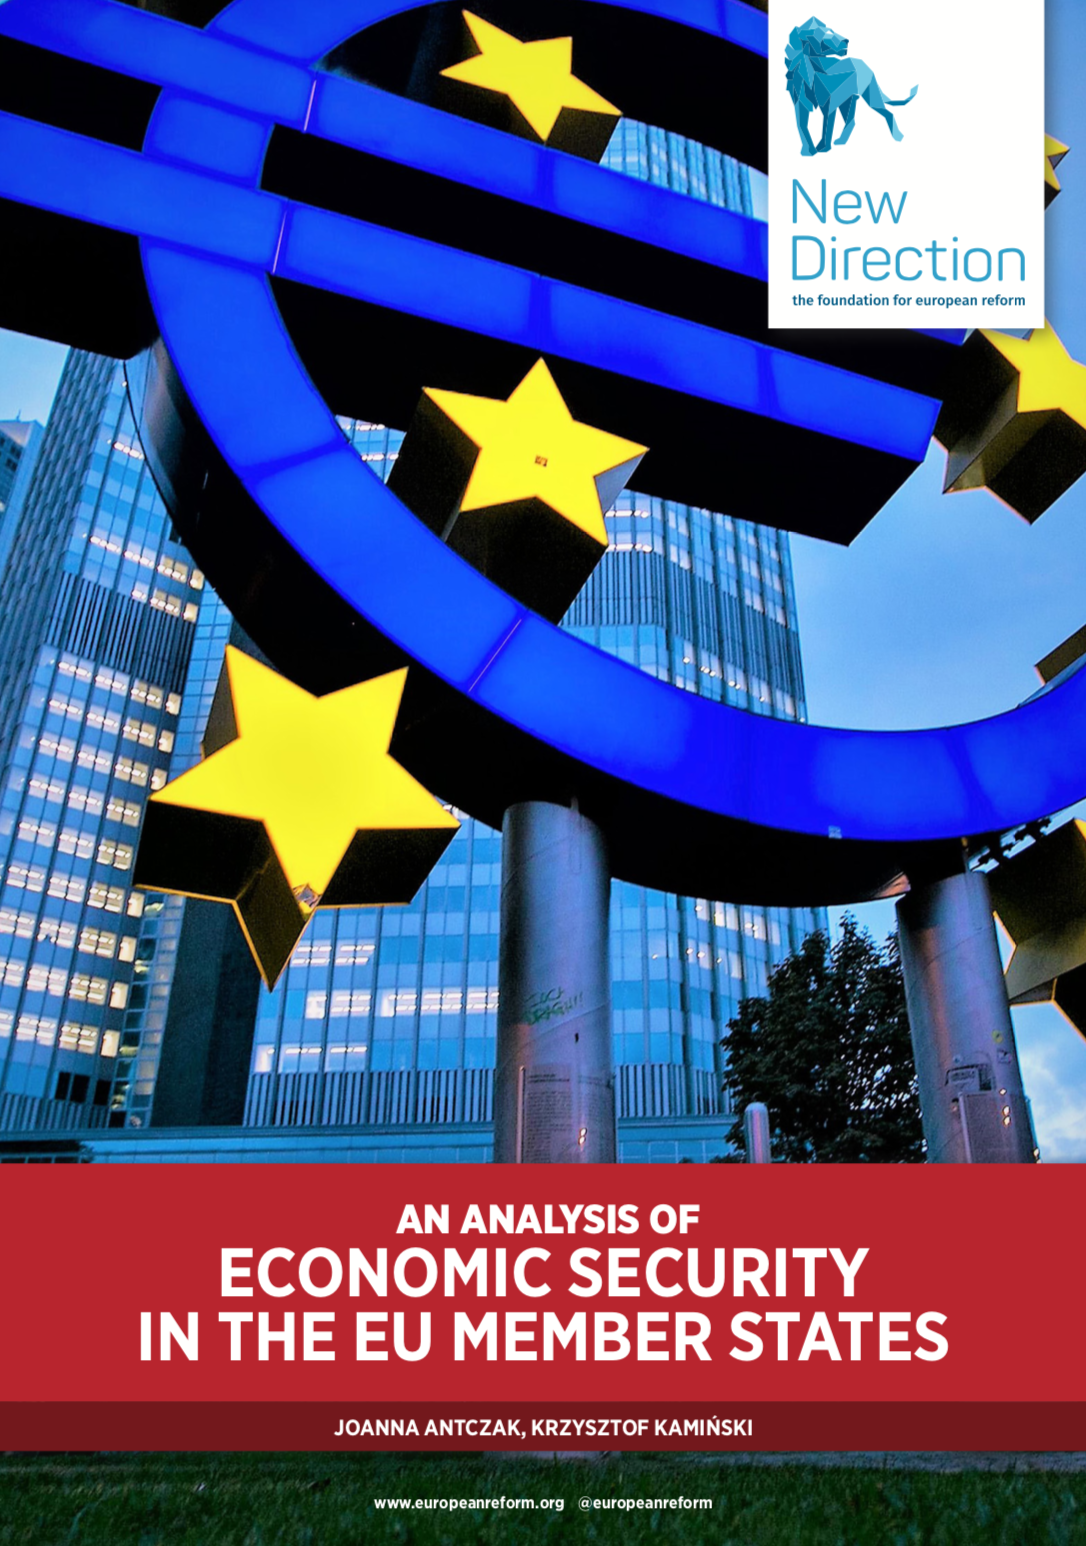 AN ANALYSIS OF ECONOMIC SECURITY IN THE EU MEMBER STATES